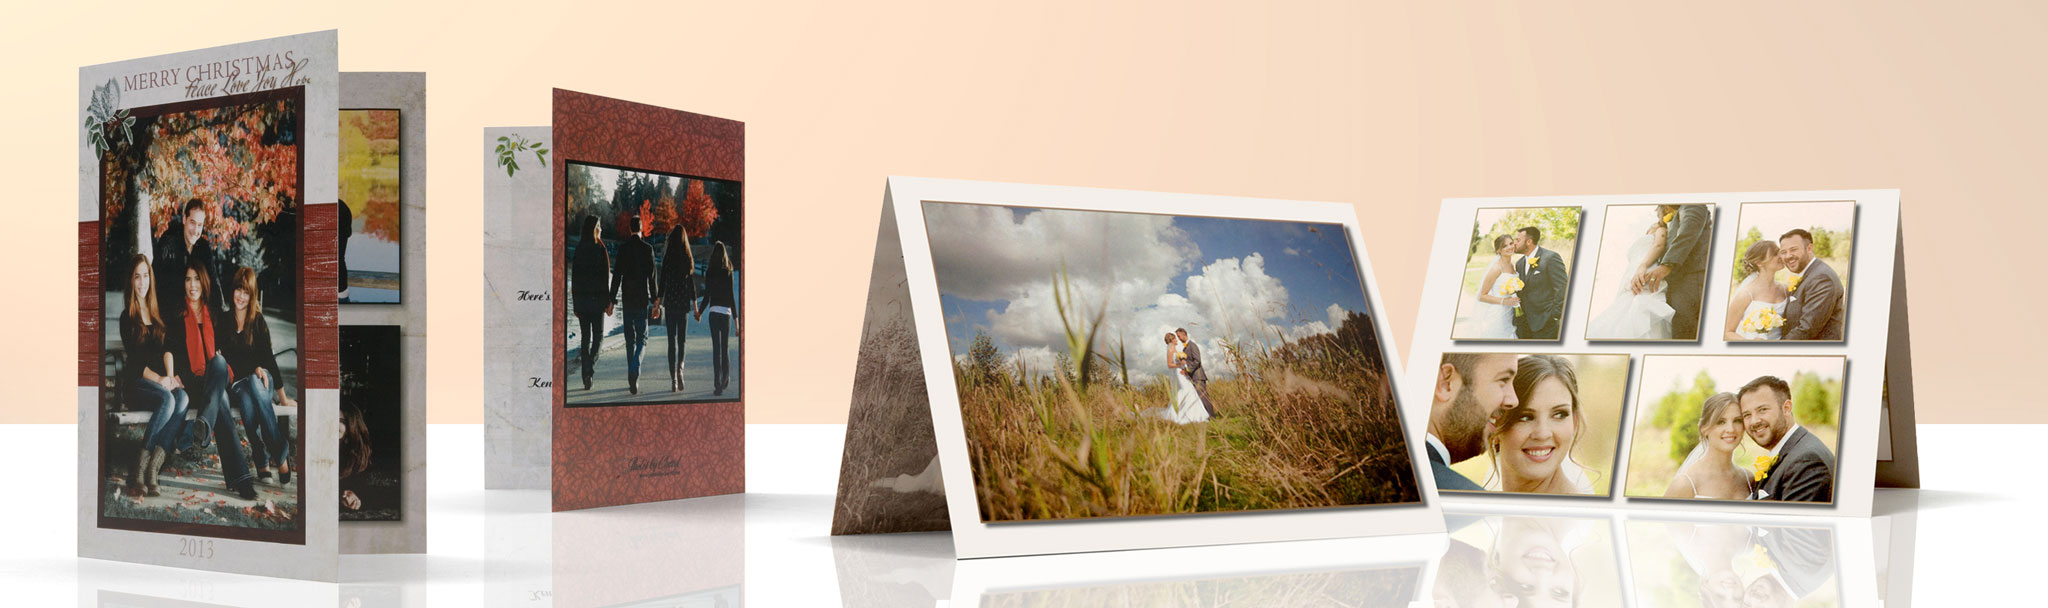 Custom Made Photo Greeting Cards